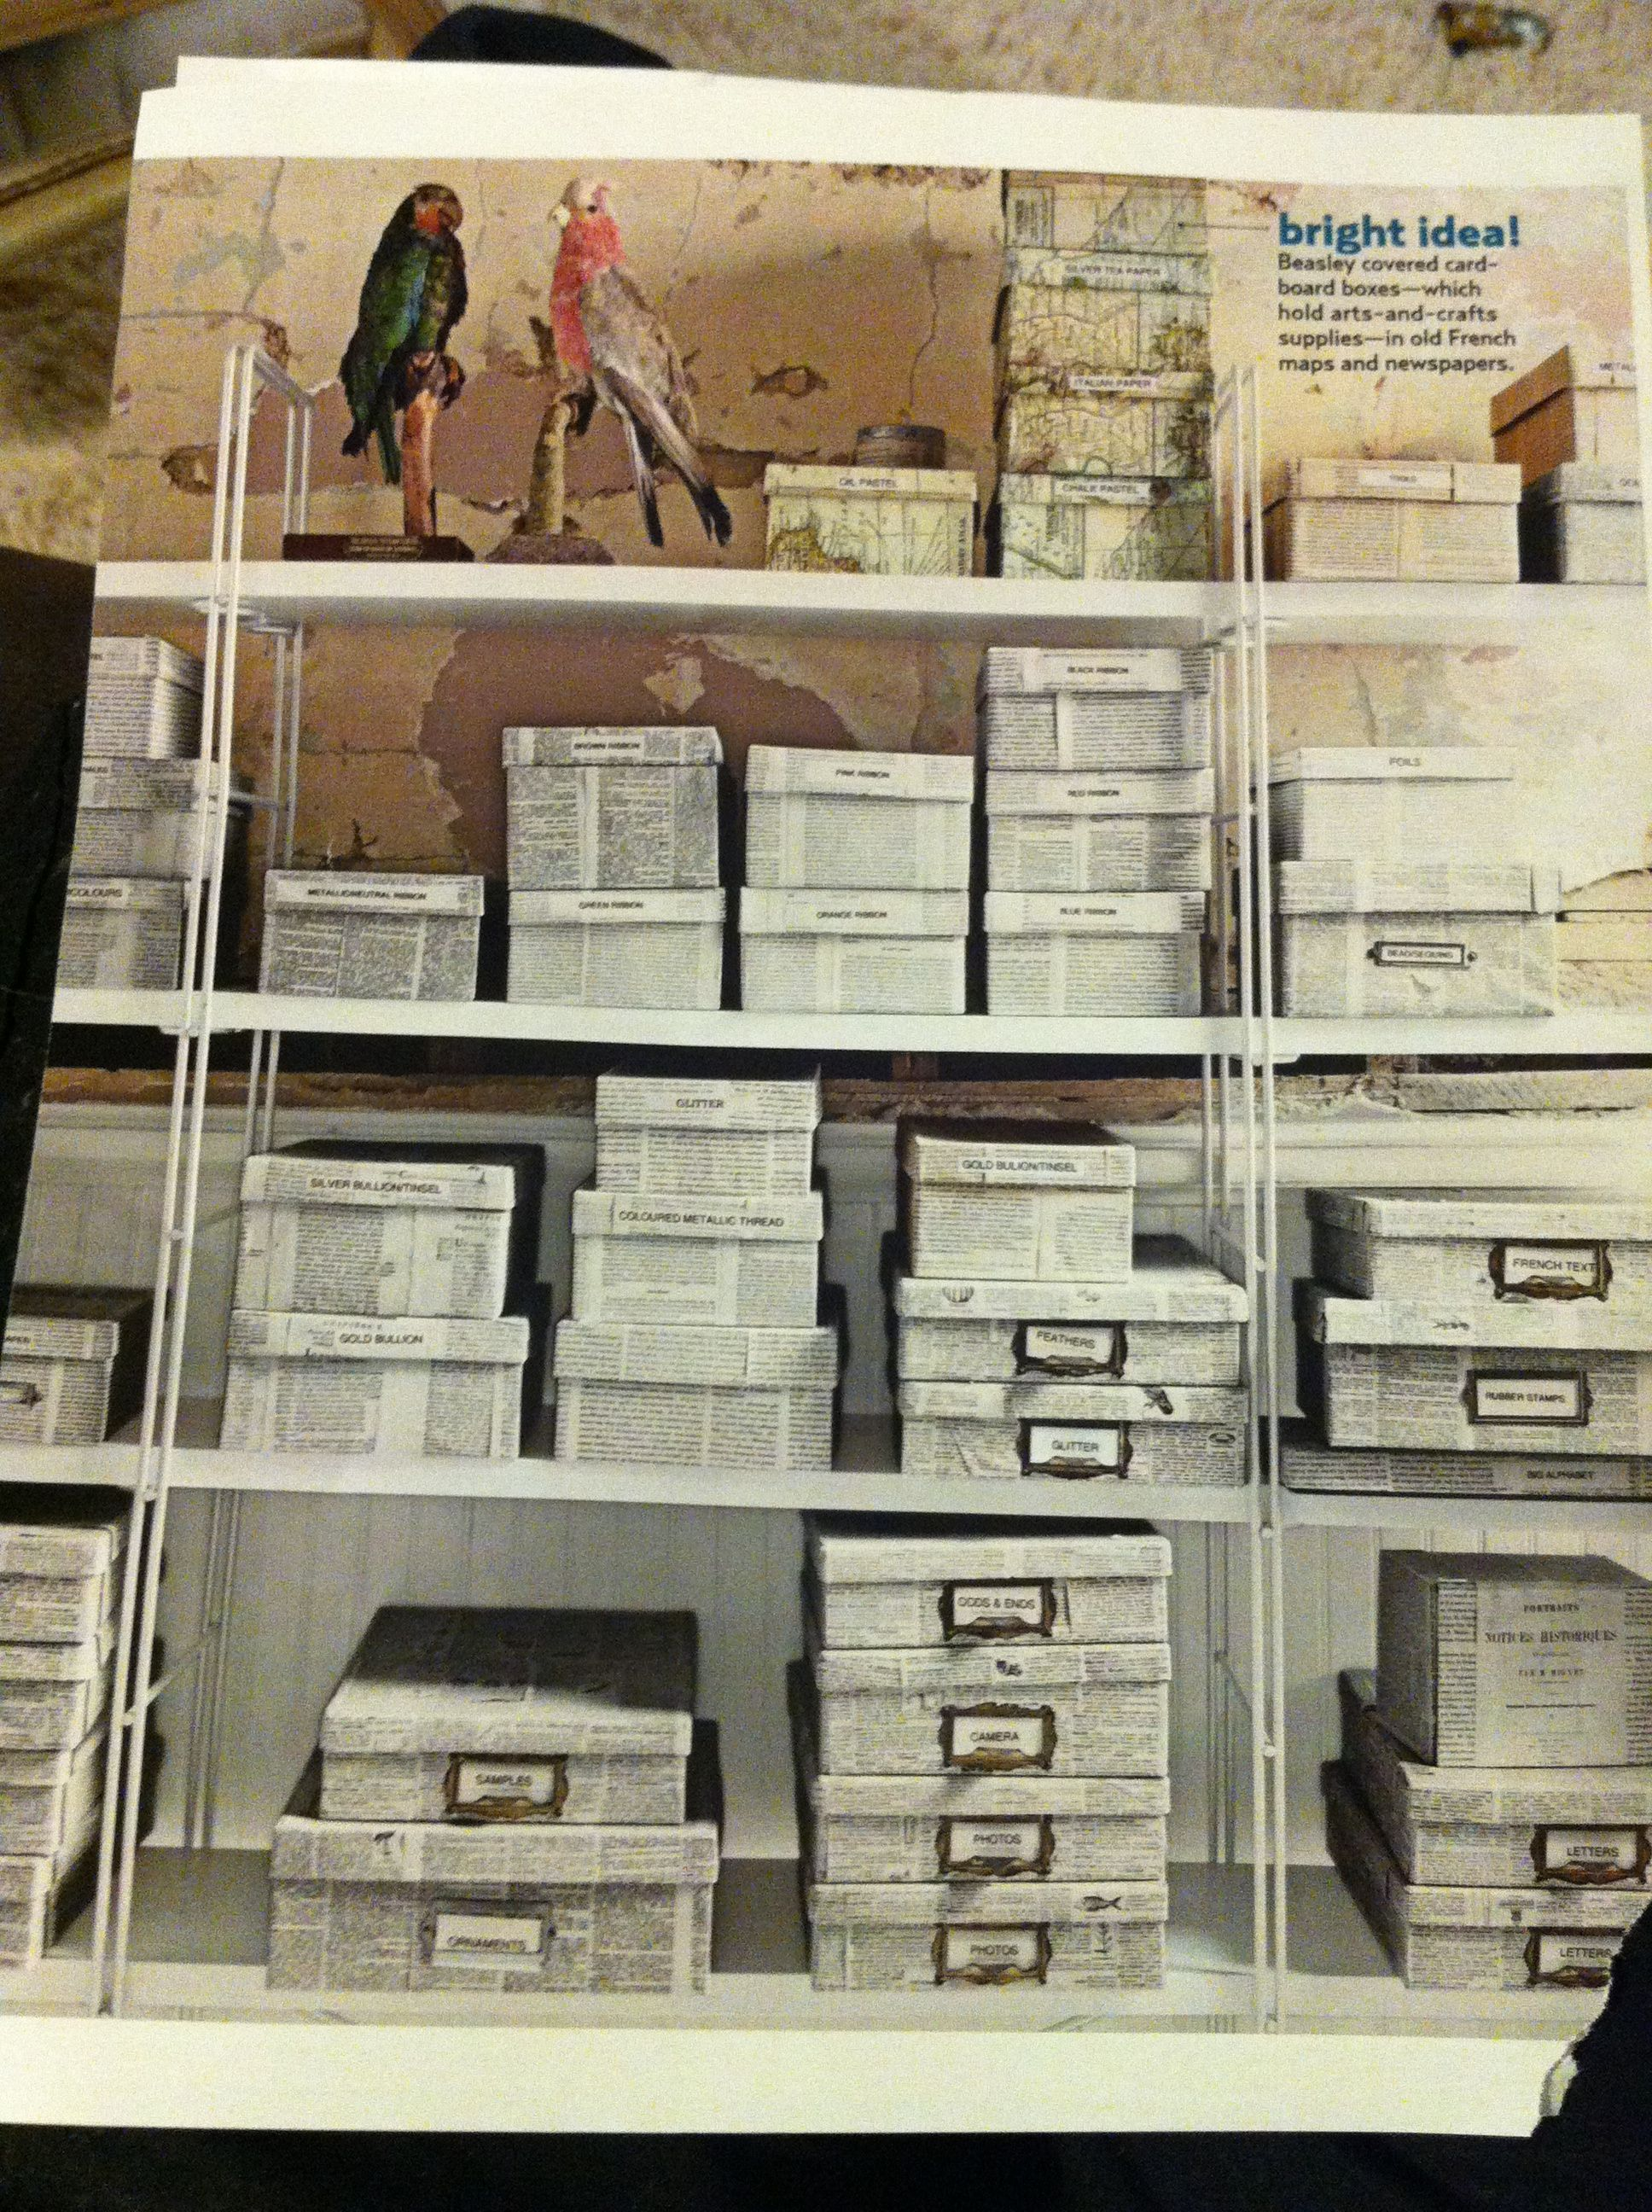 Remember when I did this for our closet (using pages from that book of organization tips)?